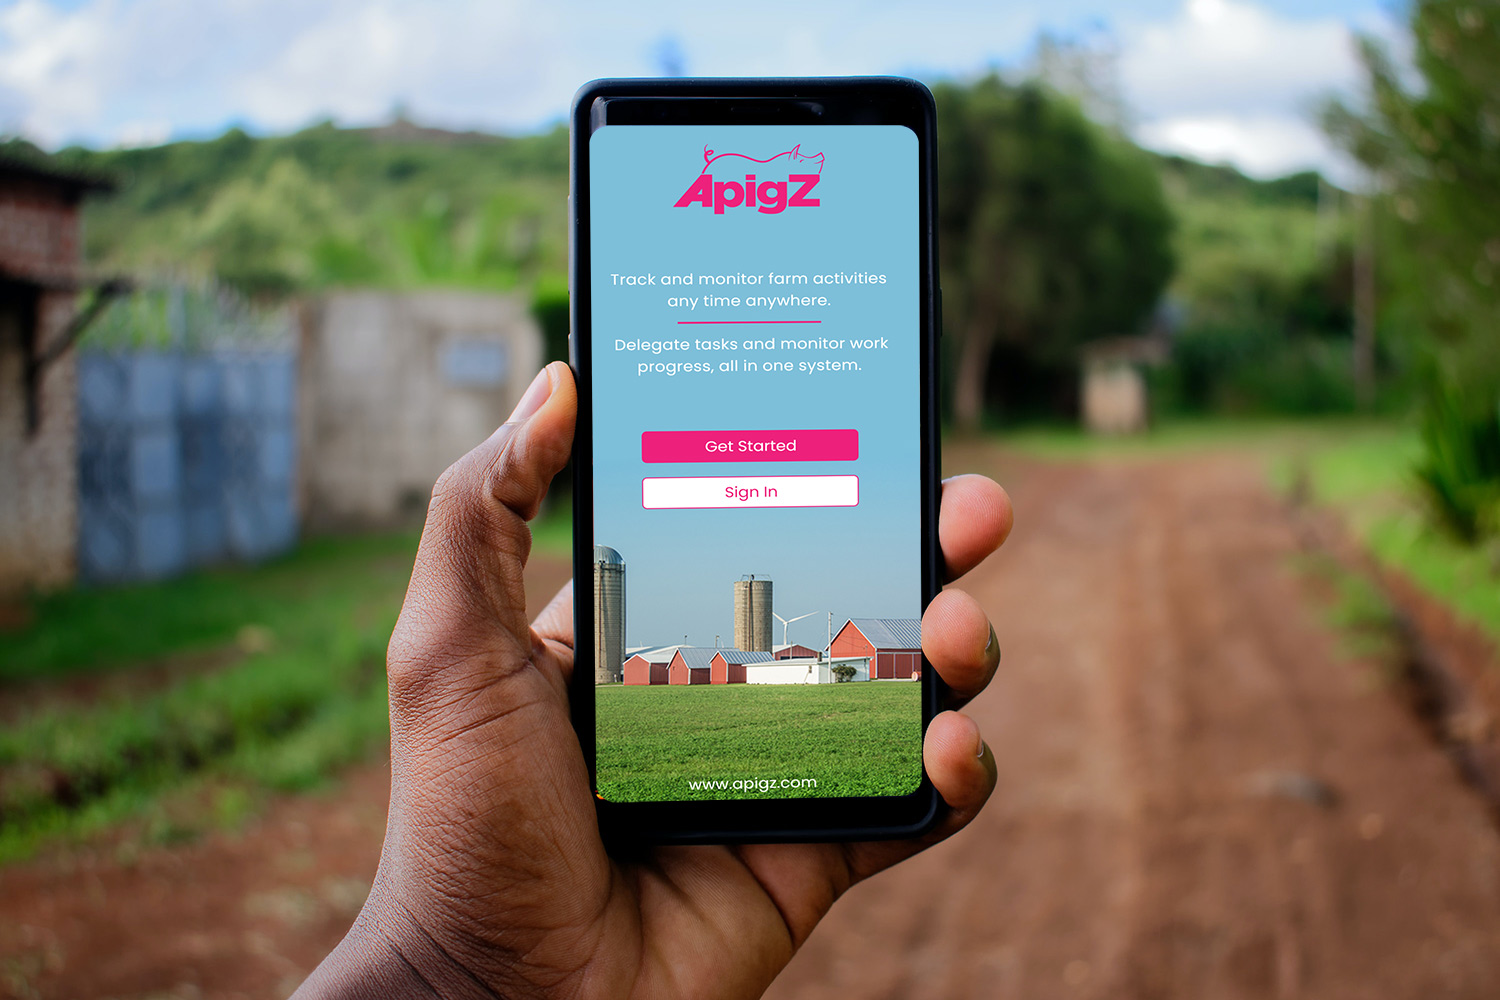 ApigZ is a cloud-based pig farm management system that helps customers perform critical management tasks from any device, at any location.